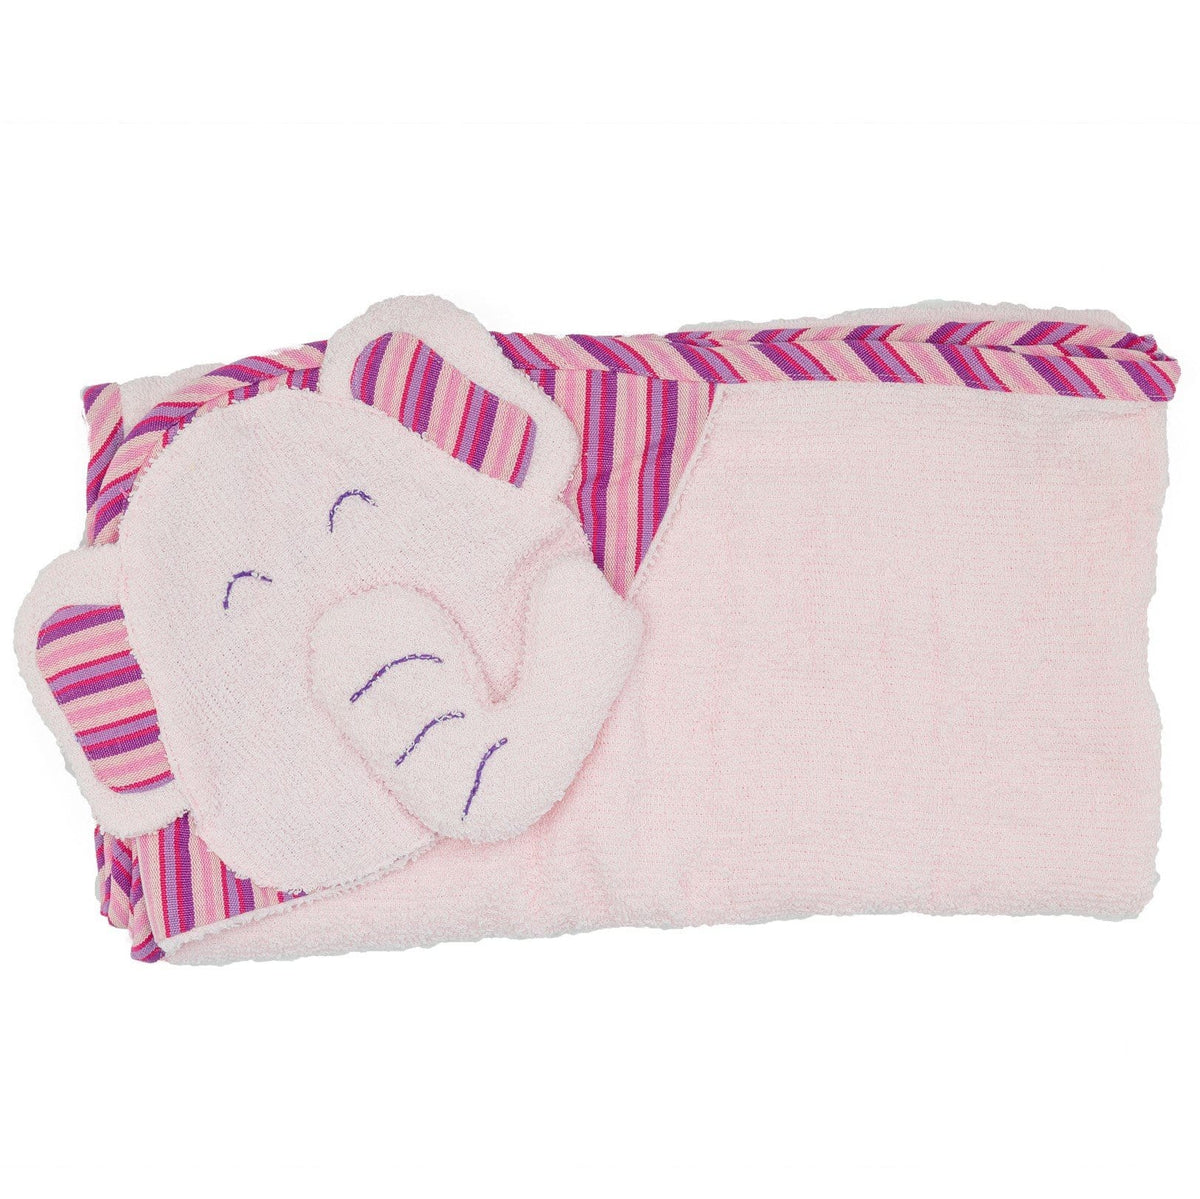 Kids Hooded Elephant Towel - Pink